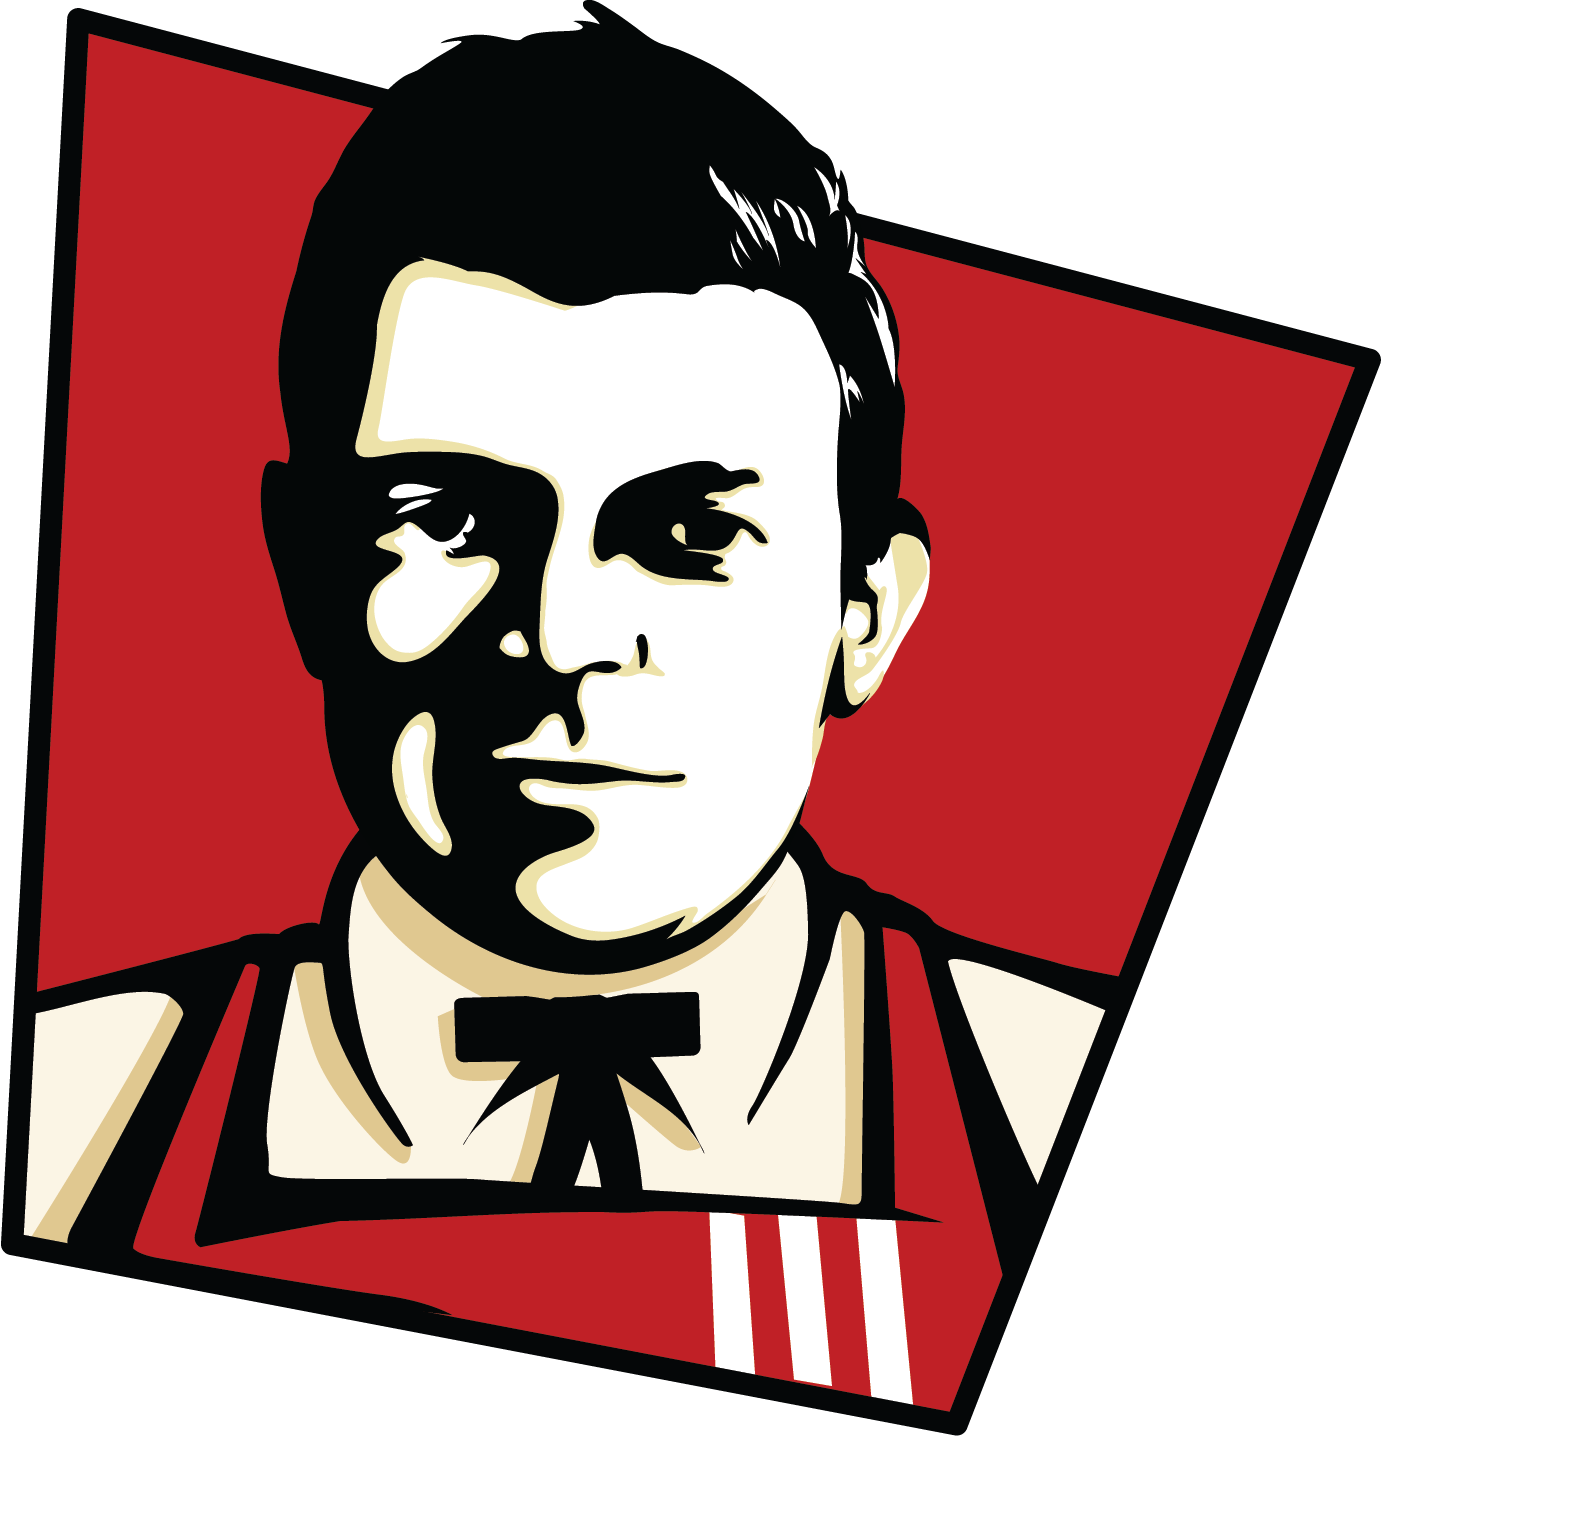 I will draw you in KFC logo style caricature pop arts